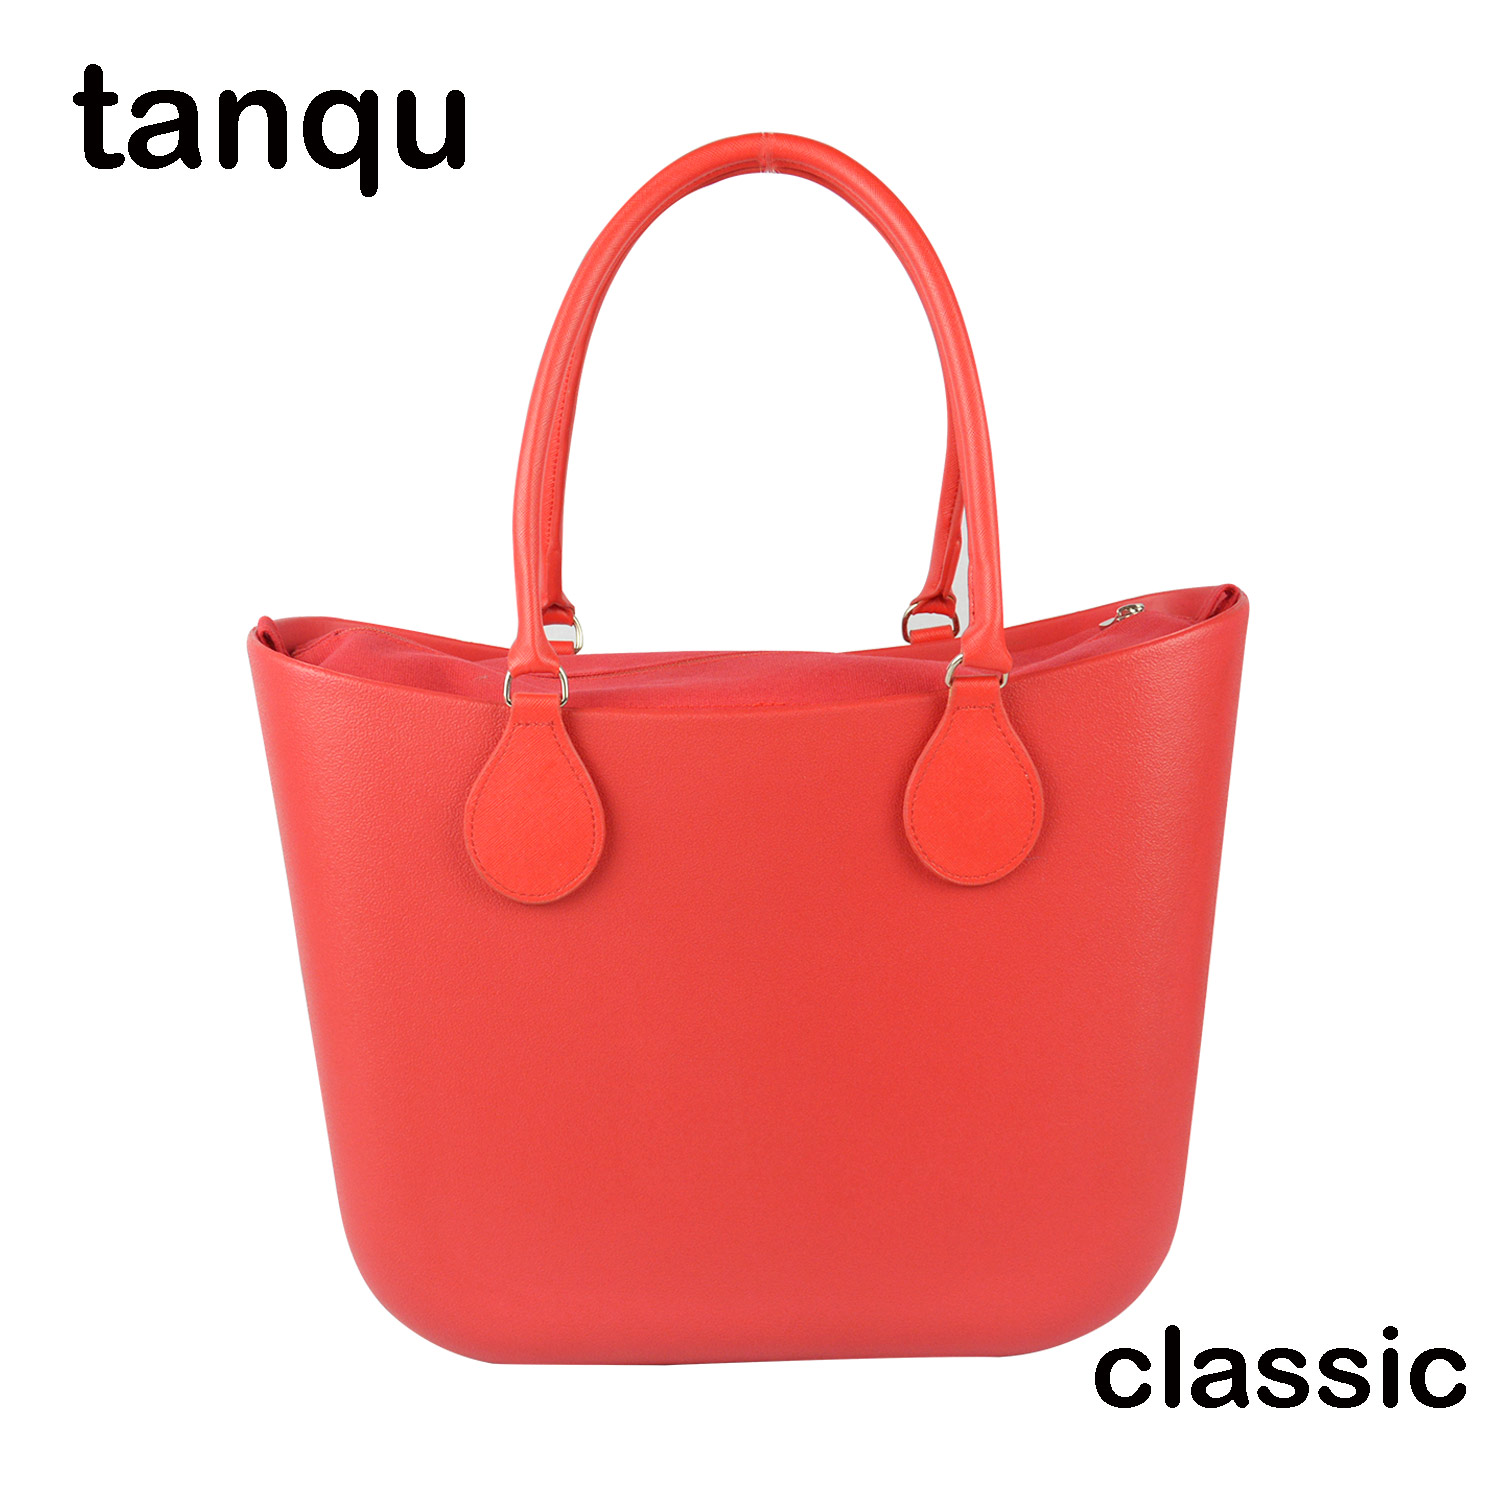 2018 New tanqu Classic EVA Bag with Insert Inner Pocket Colorful Handles EVA Silicon Rubber Waterproof Women Handbag Obag Style new colorful cartoon floral insert lining for o chic ochic canvas waterproof inner pocket for obag women handbag